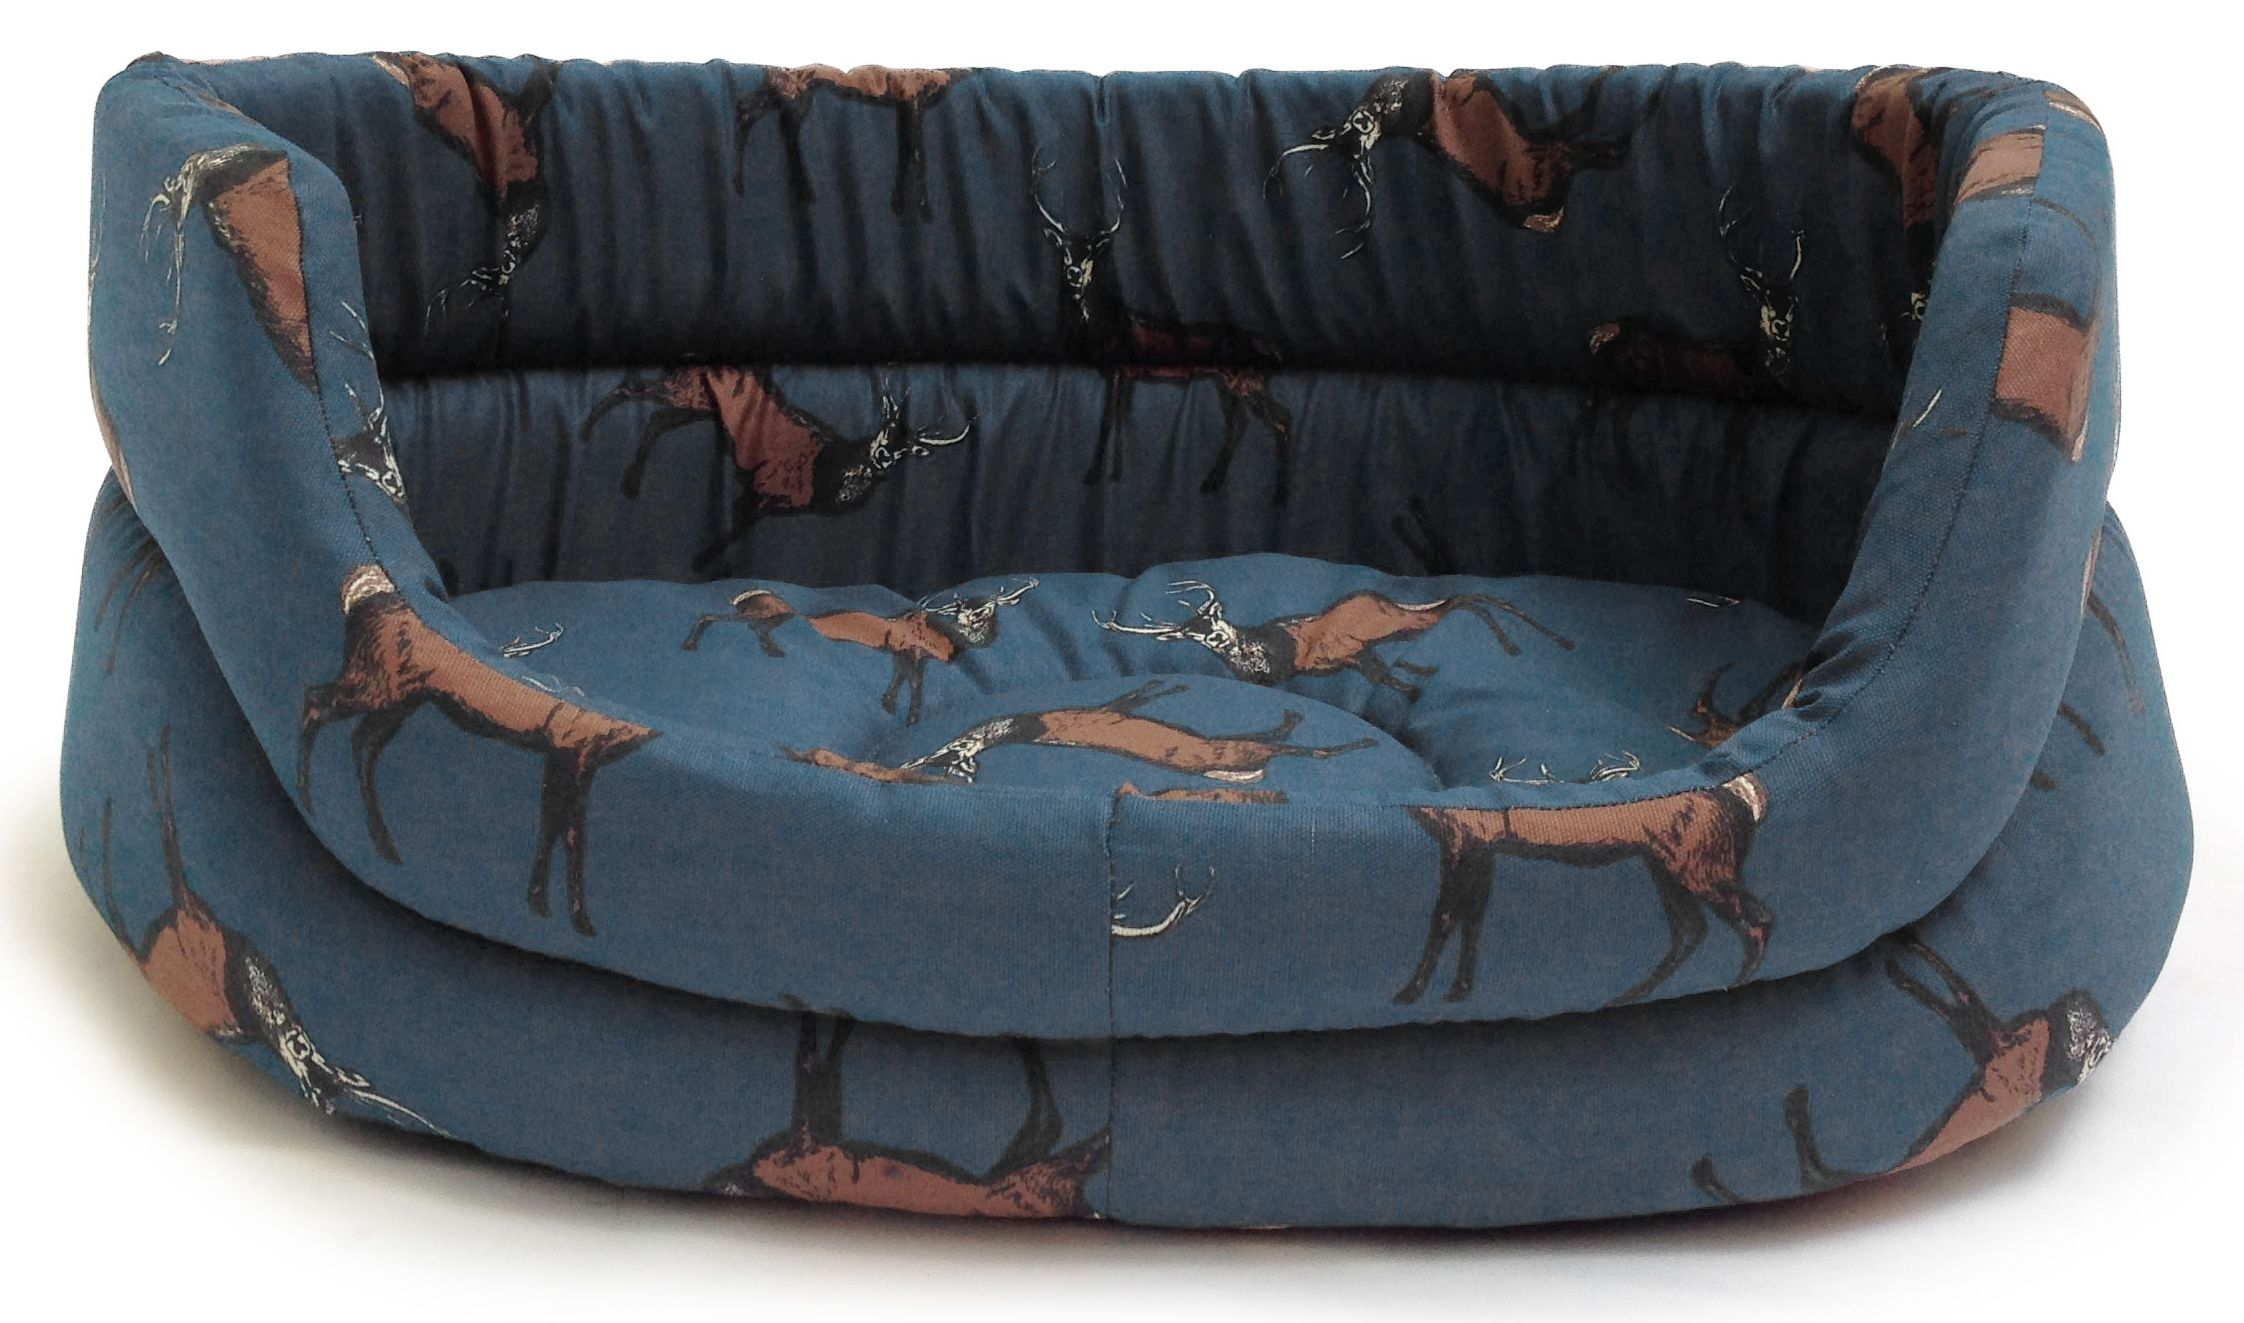 These luxurious Slumber beds are designed with functionality and style in mind. Made from 100% cotton and filled with a super soft thermal polyester fibre filling, they provide warmth and comfort for your pet. Each Slumber bed features a base which can be easily removed by velcro tabs for washing.